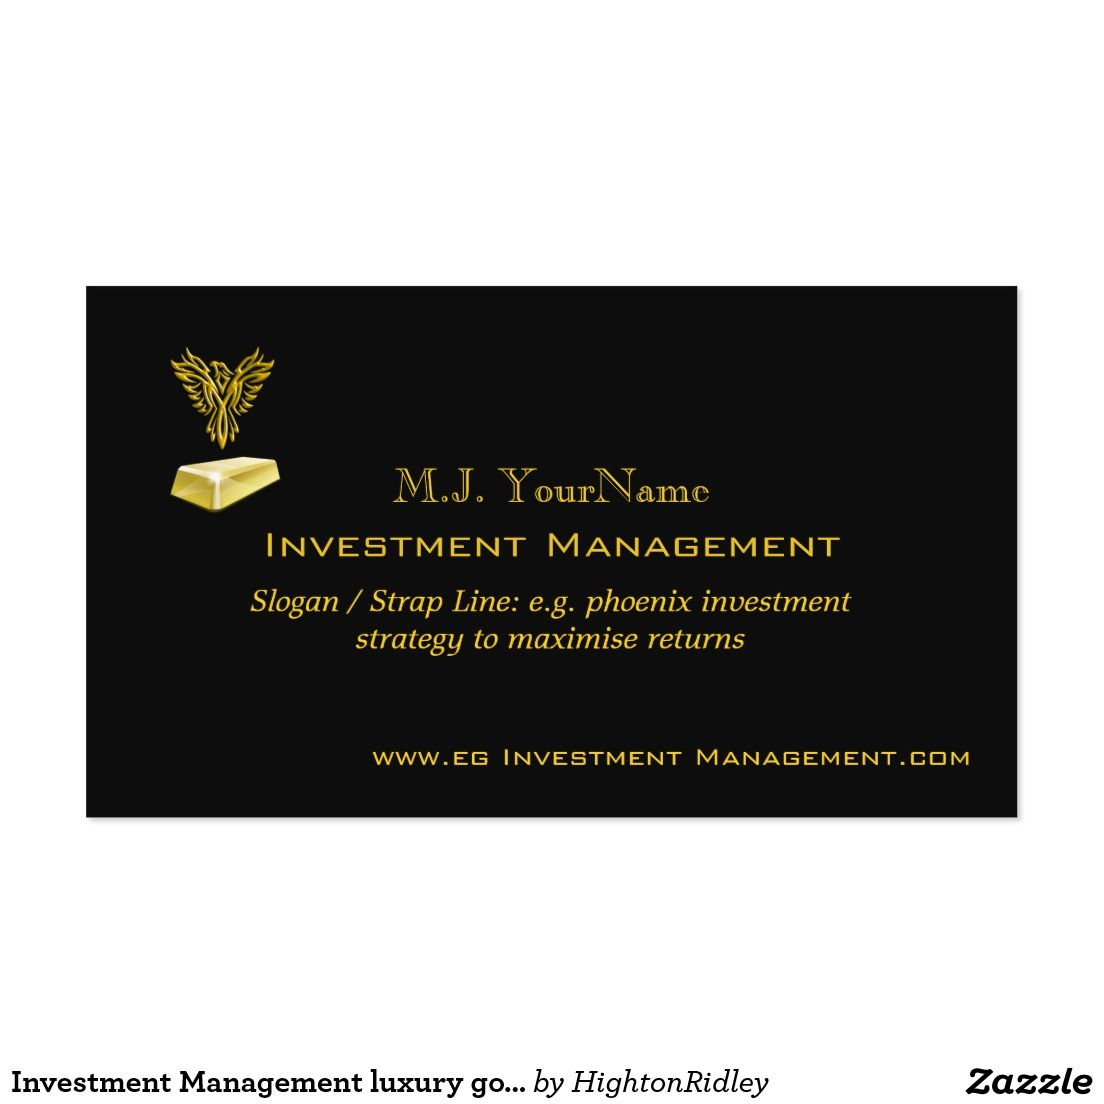 Investment management luxury gold on black phoenix business card investment management luxury gold on black phoenix business card colourmoves